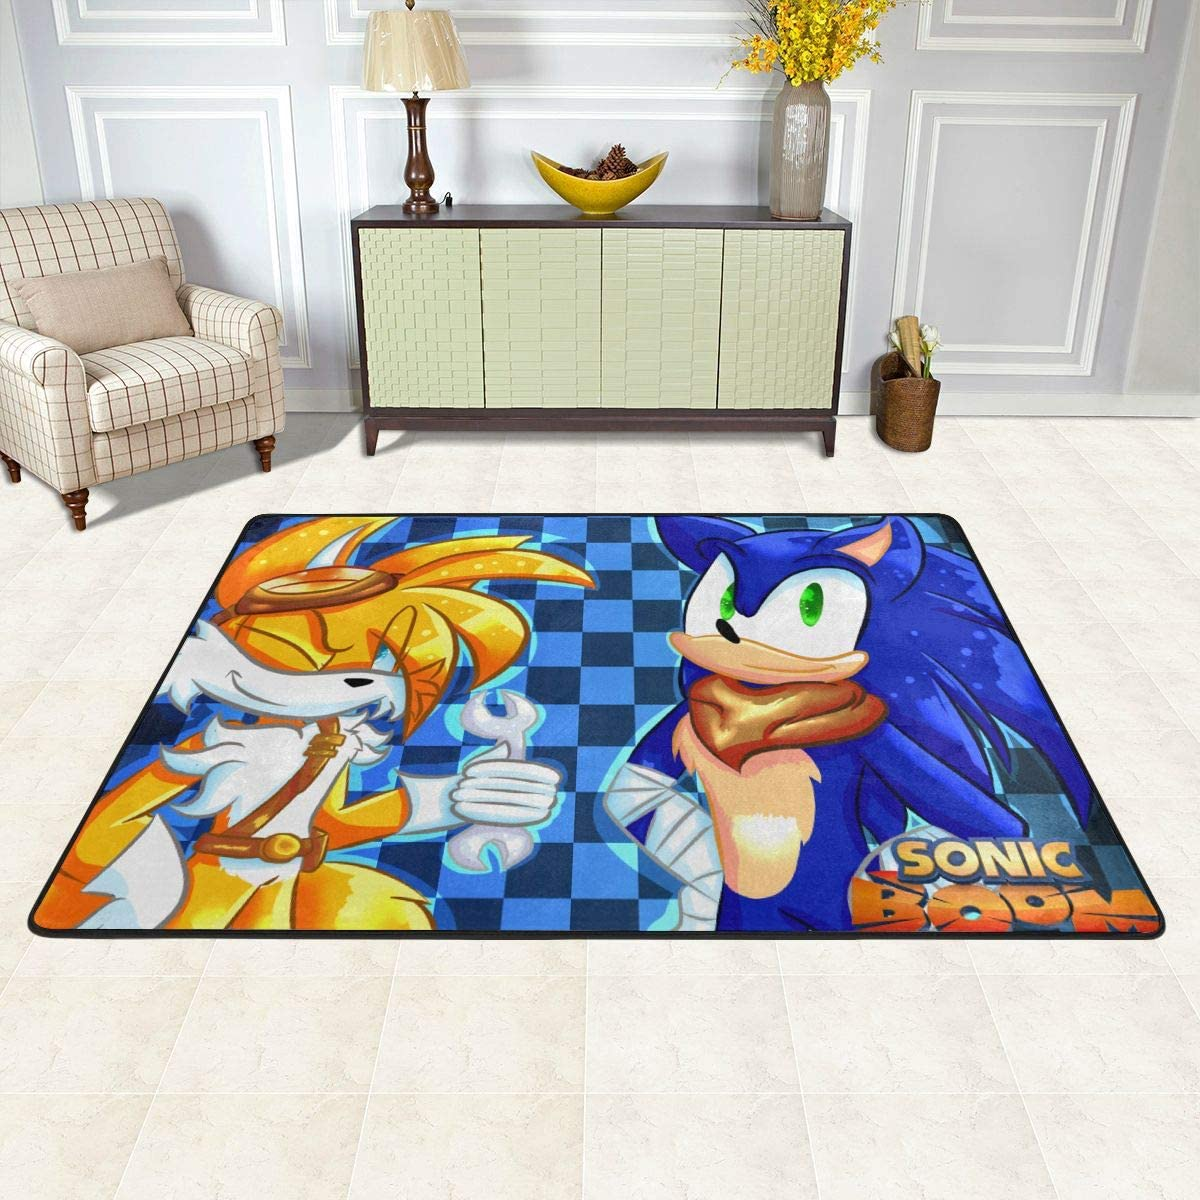 Angela R Mathews Sonic Boom-Sonic and Tail Non-Slip Carpet Area Rug Modern Flannel Microfiber Anime Cartoon Rectangle Carpet Decor Floor Rug Living Room,Bedroom,Study Floor Mat 6 X 4